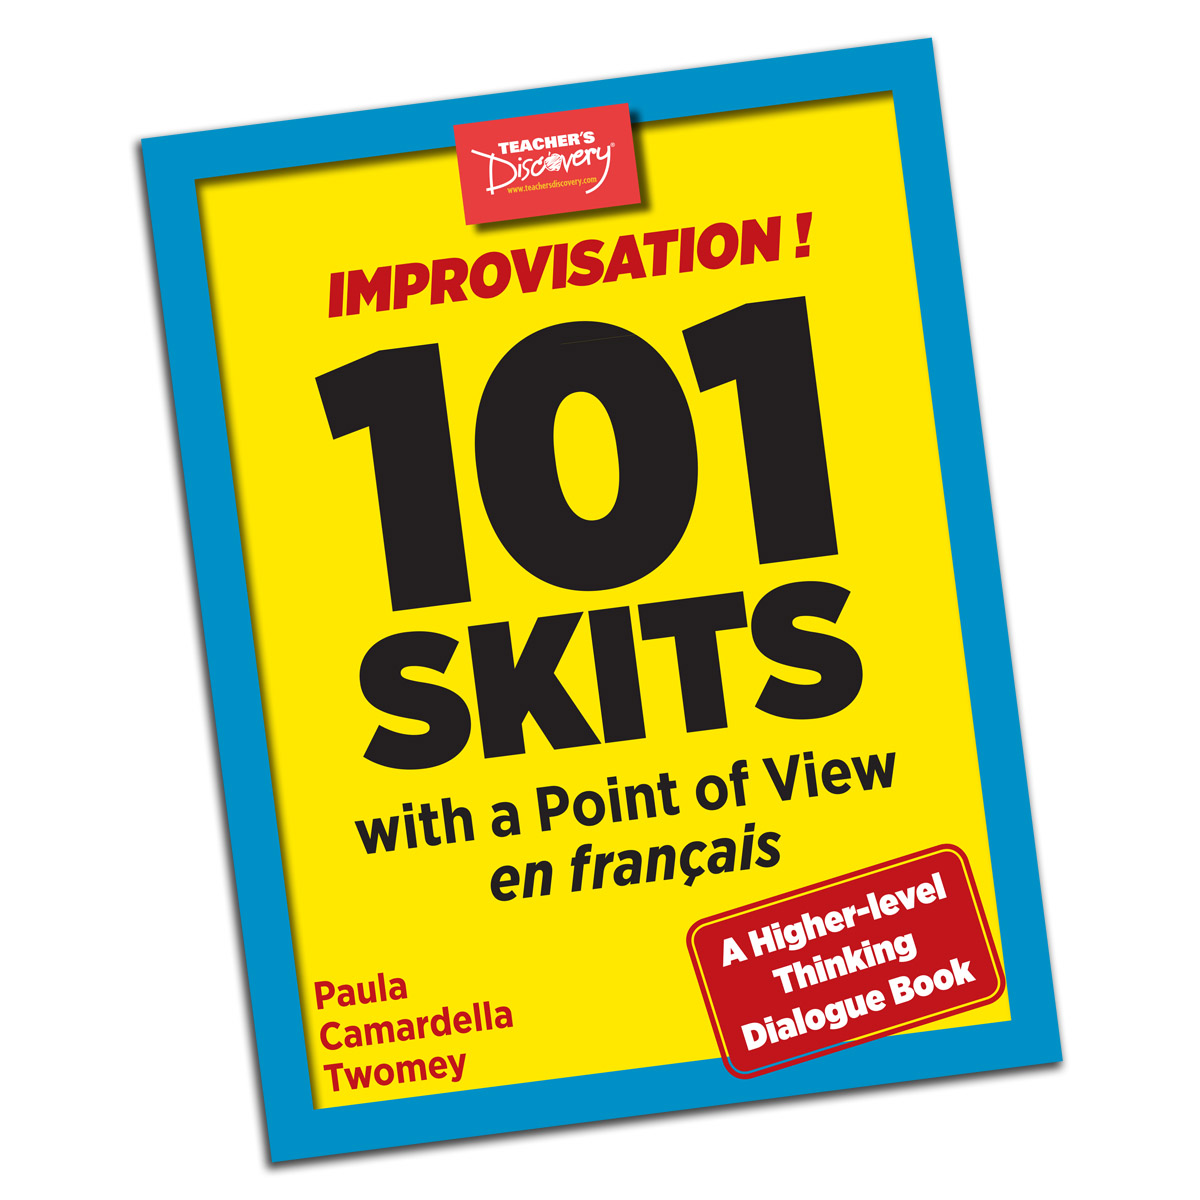 Improvisation ! 101 Skits with a Point of View en français Book